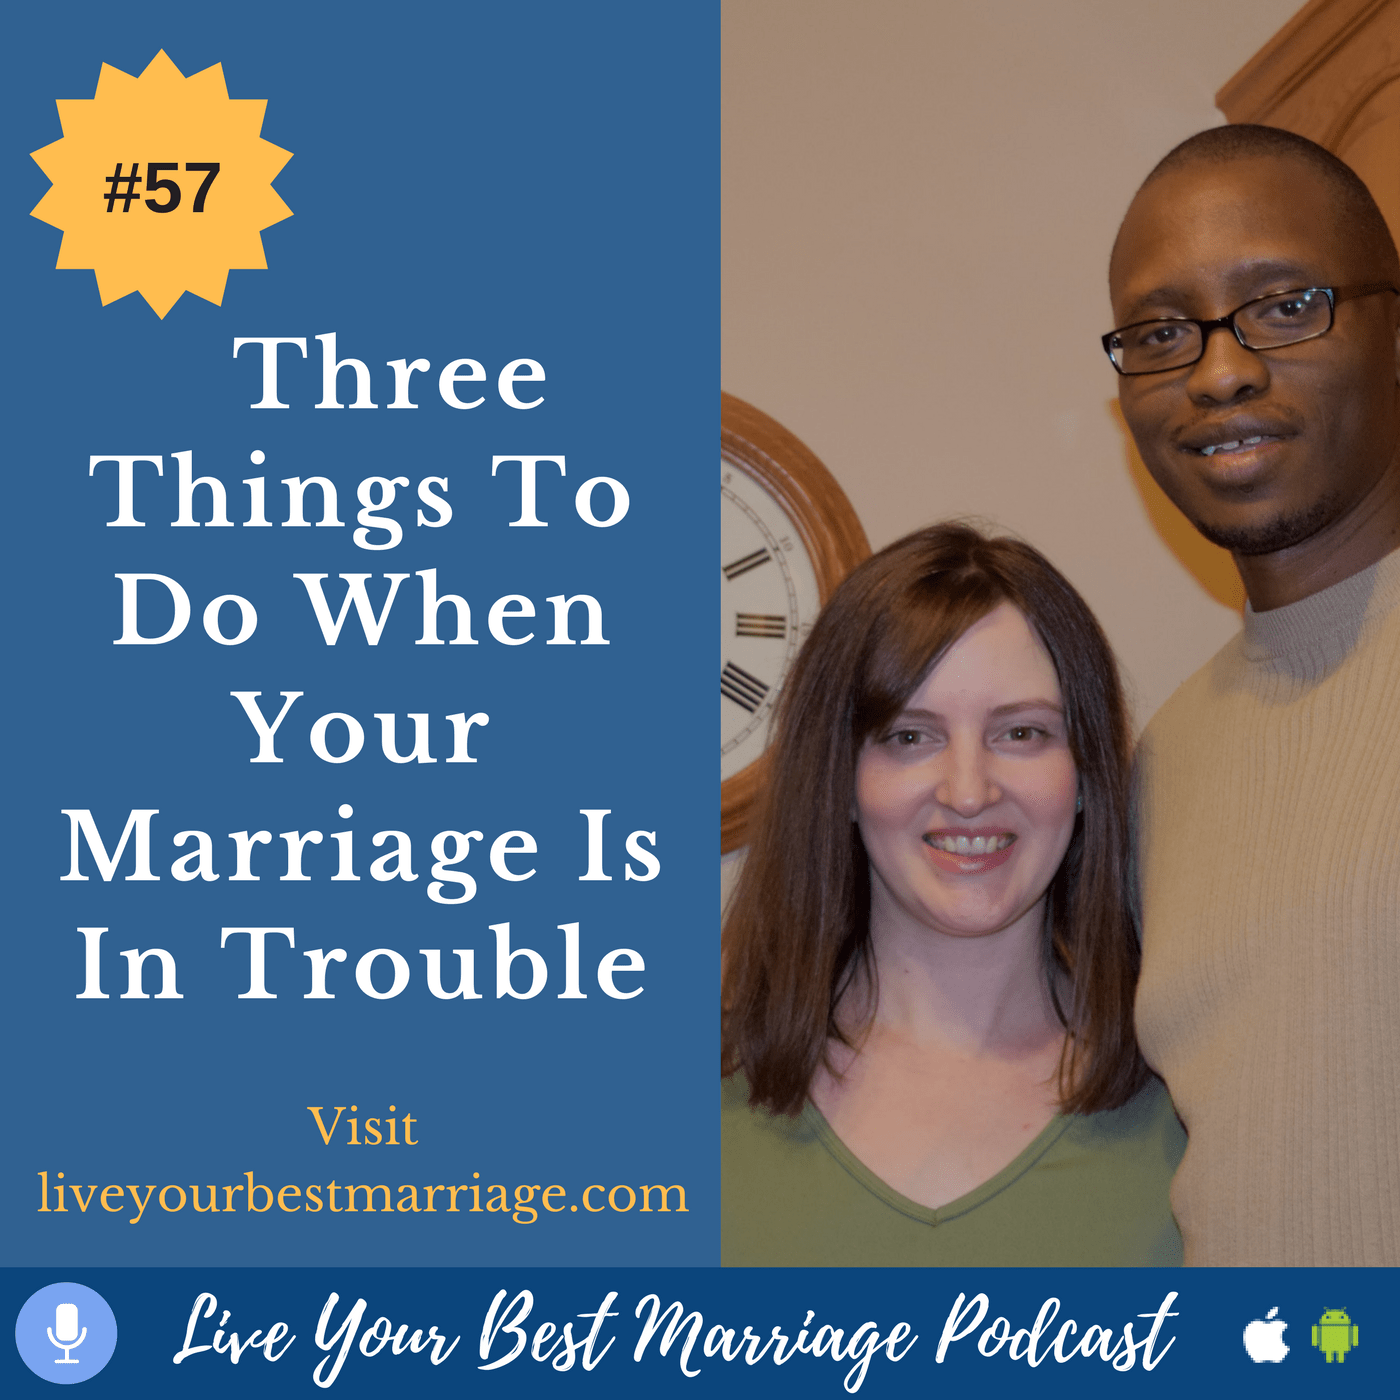 episode-57-three-things-to-do-when-your-marriage-is-in-trouble_thumbnail.png